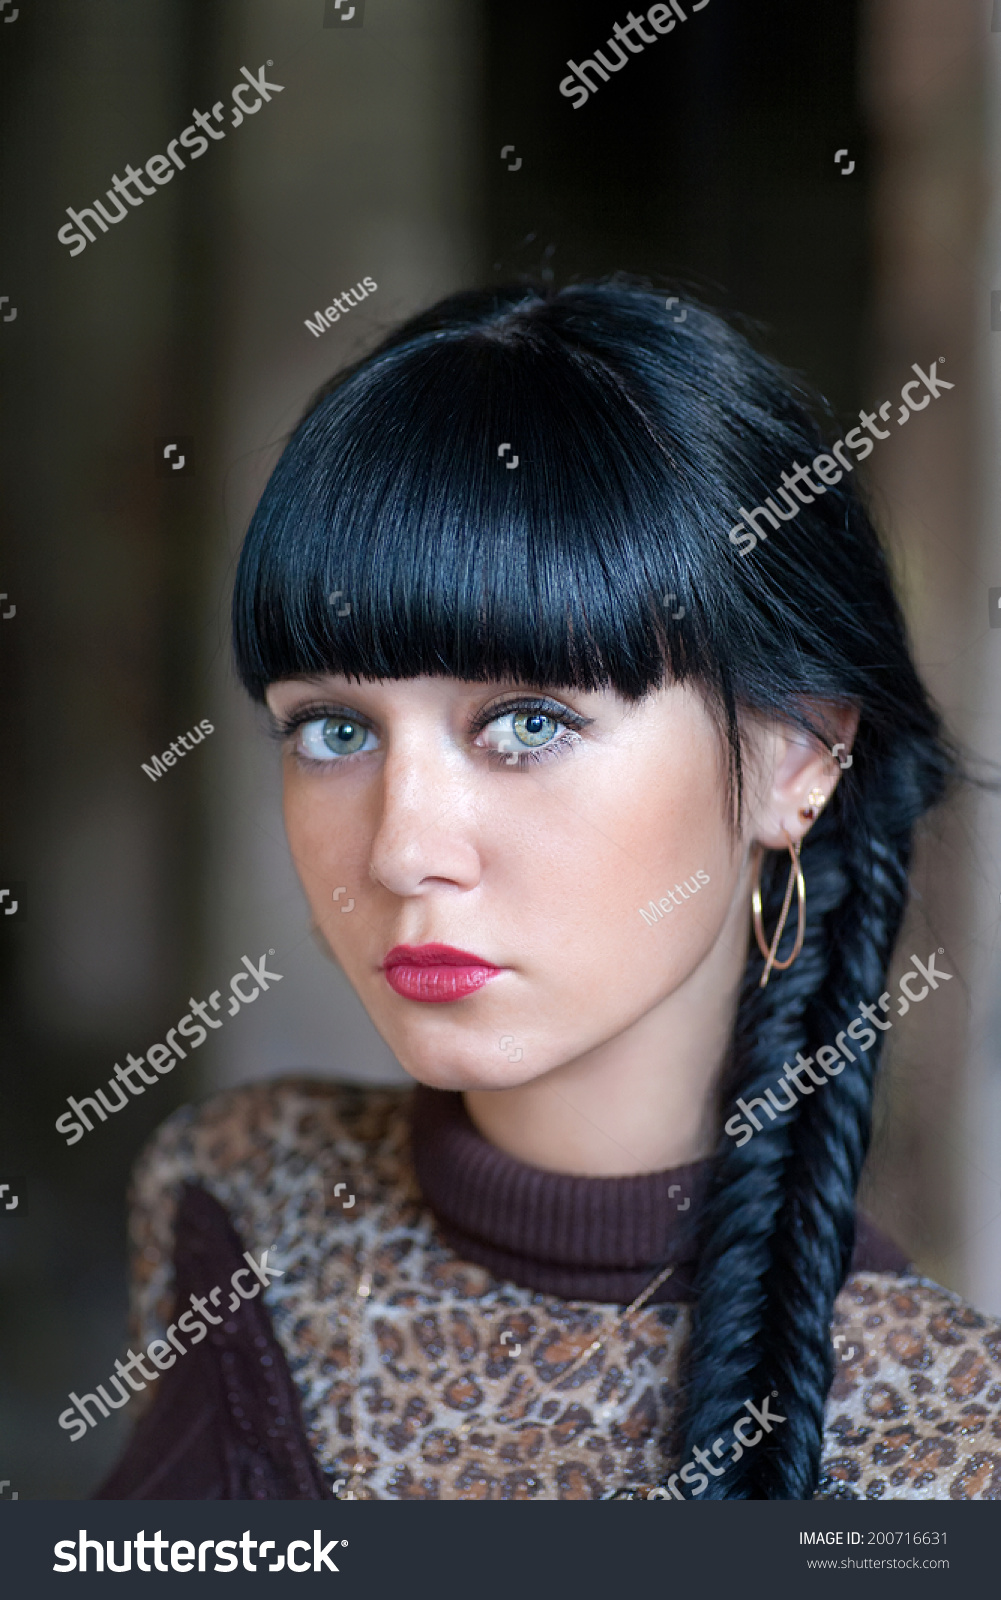 Black haired women with braid fashion style outdoors